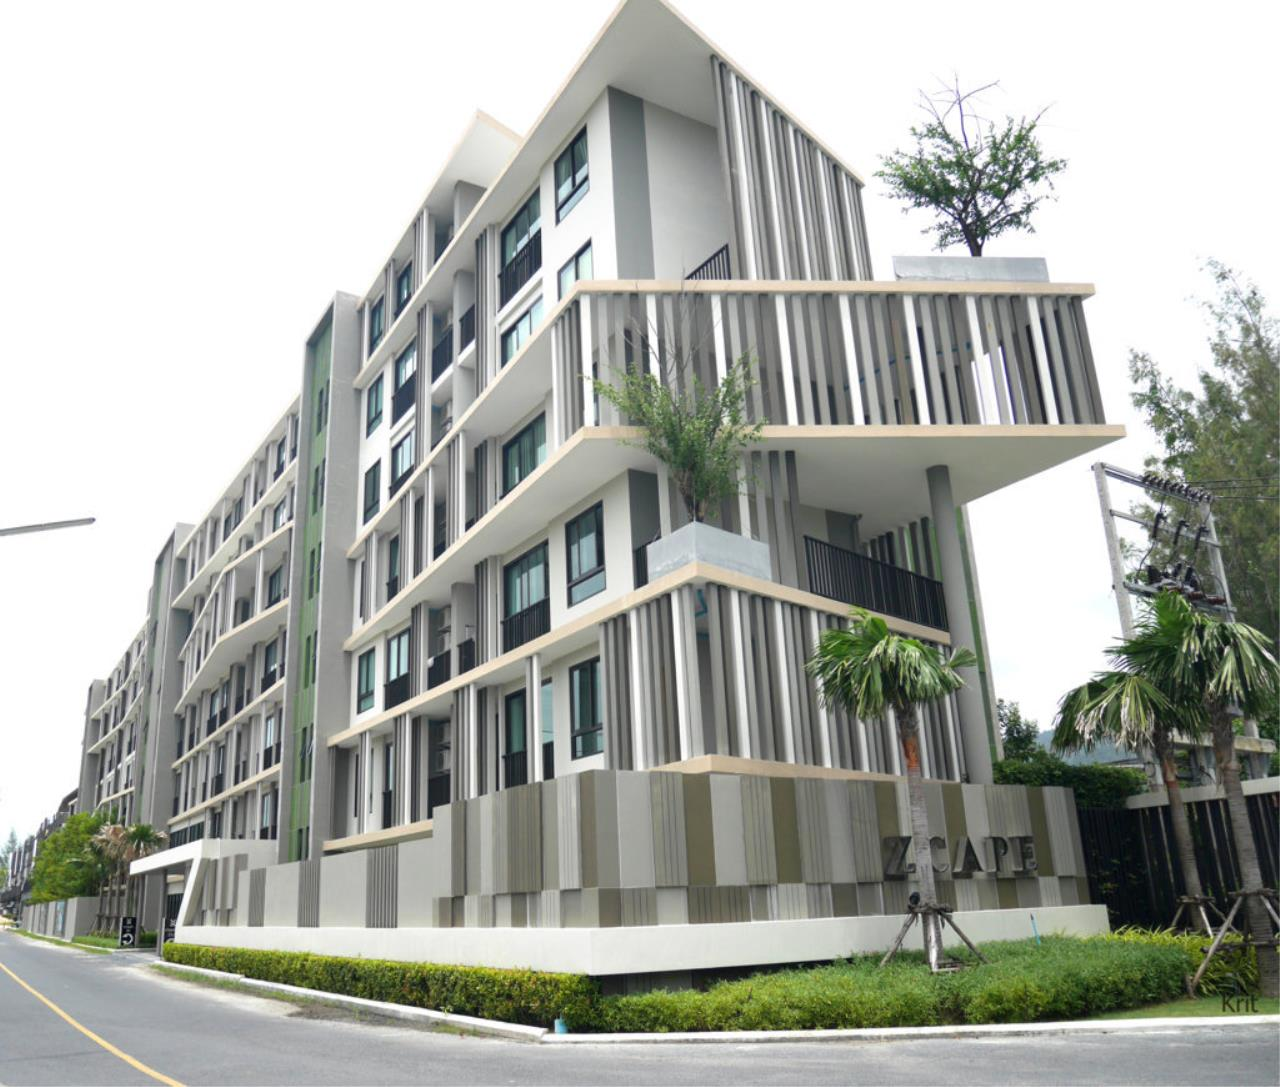 REAL Phuket  Agency's ZCape II Condominium @ Boat Avenue (Laguna) - 1-Bedroom Apartment 1